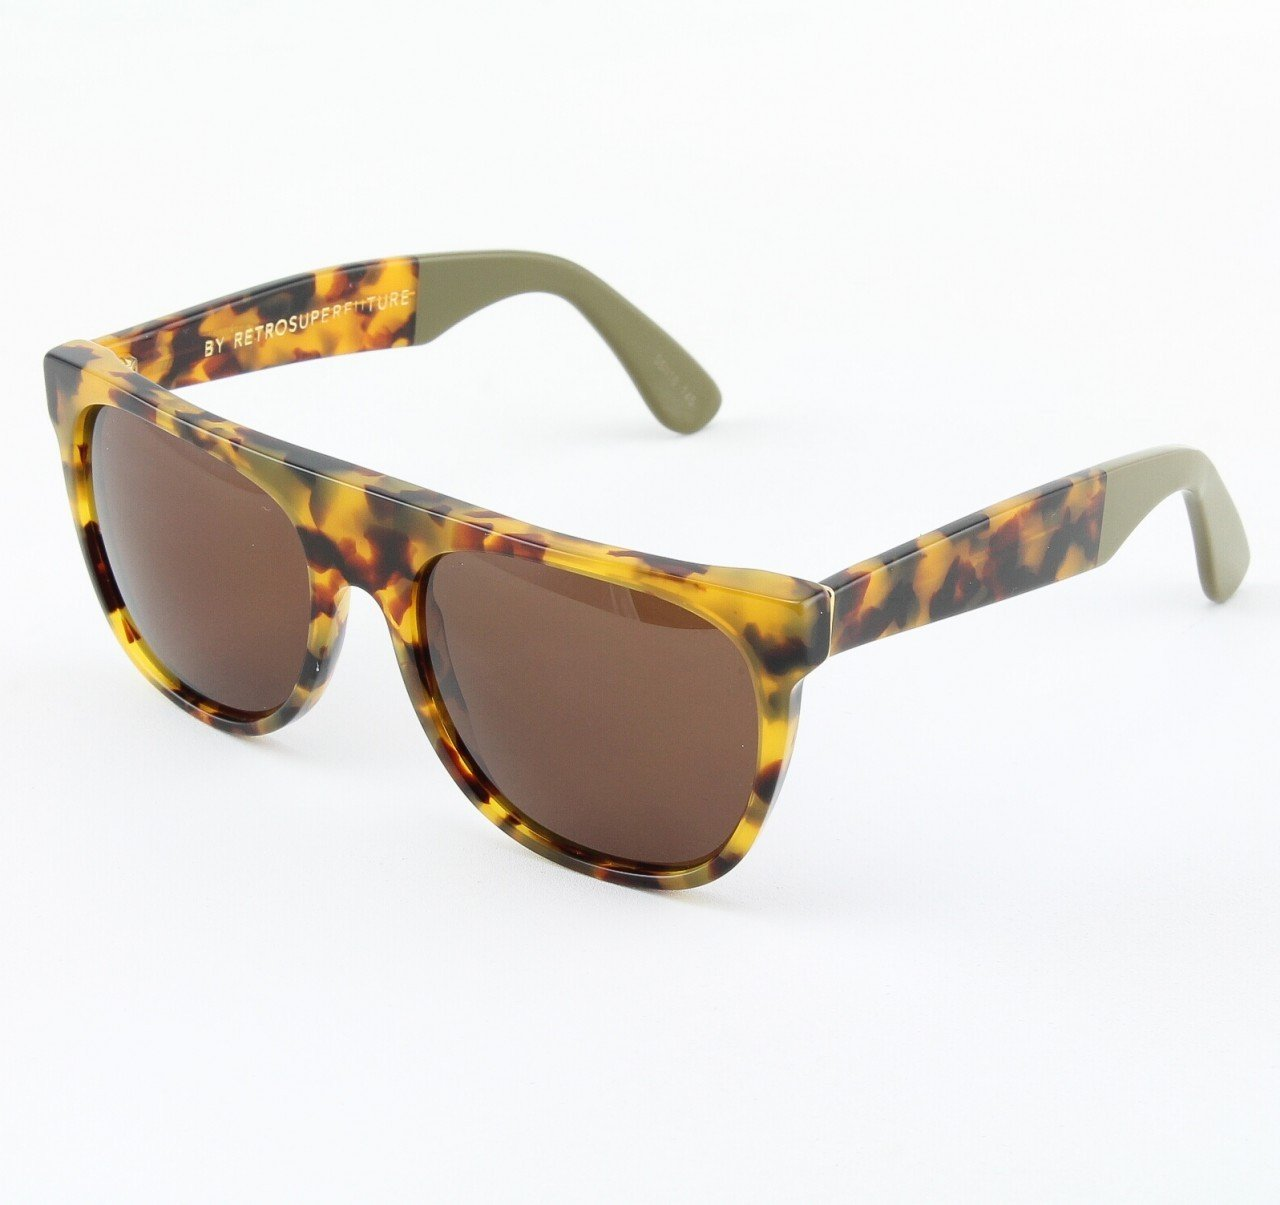 Super Flat Top 535/3T Sunglasses Spot Brown with Brown Zeiss Lenses by RETROSUPERFUTURE